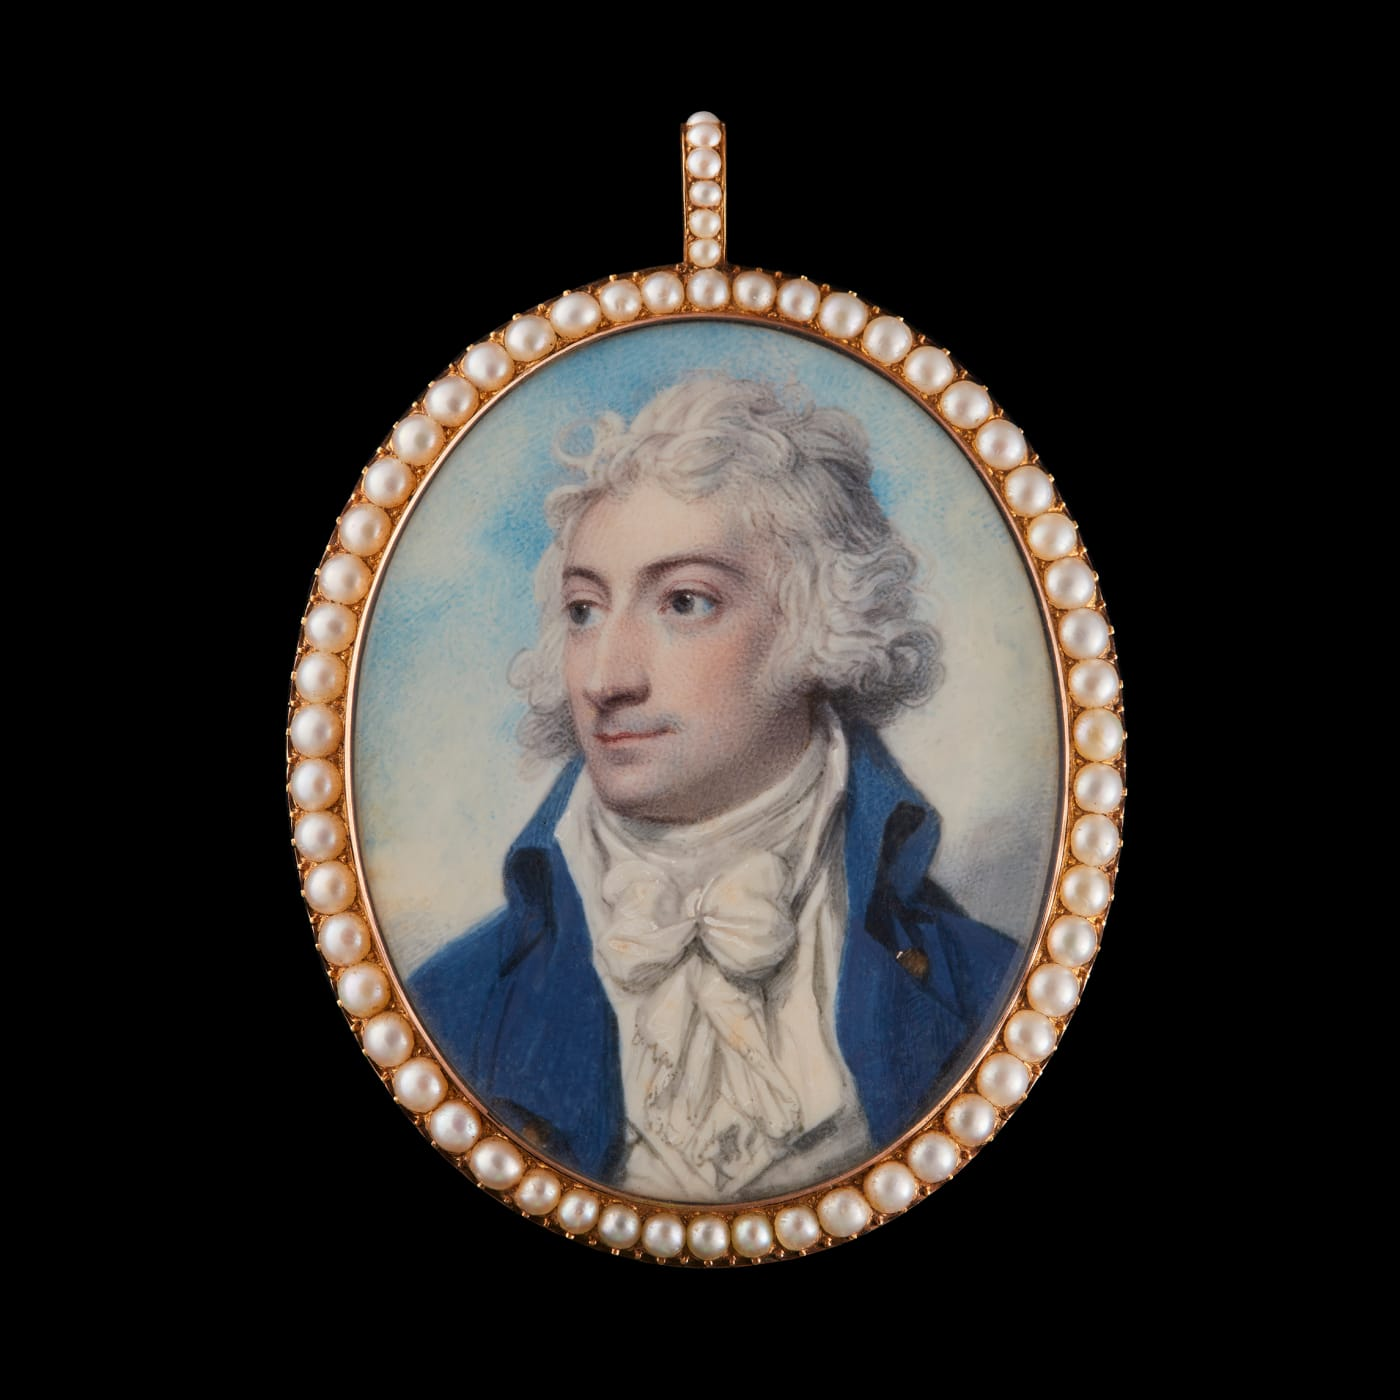 portrait miniature of a gentleman by richard cosway, surrounded by a pearl frame